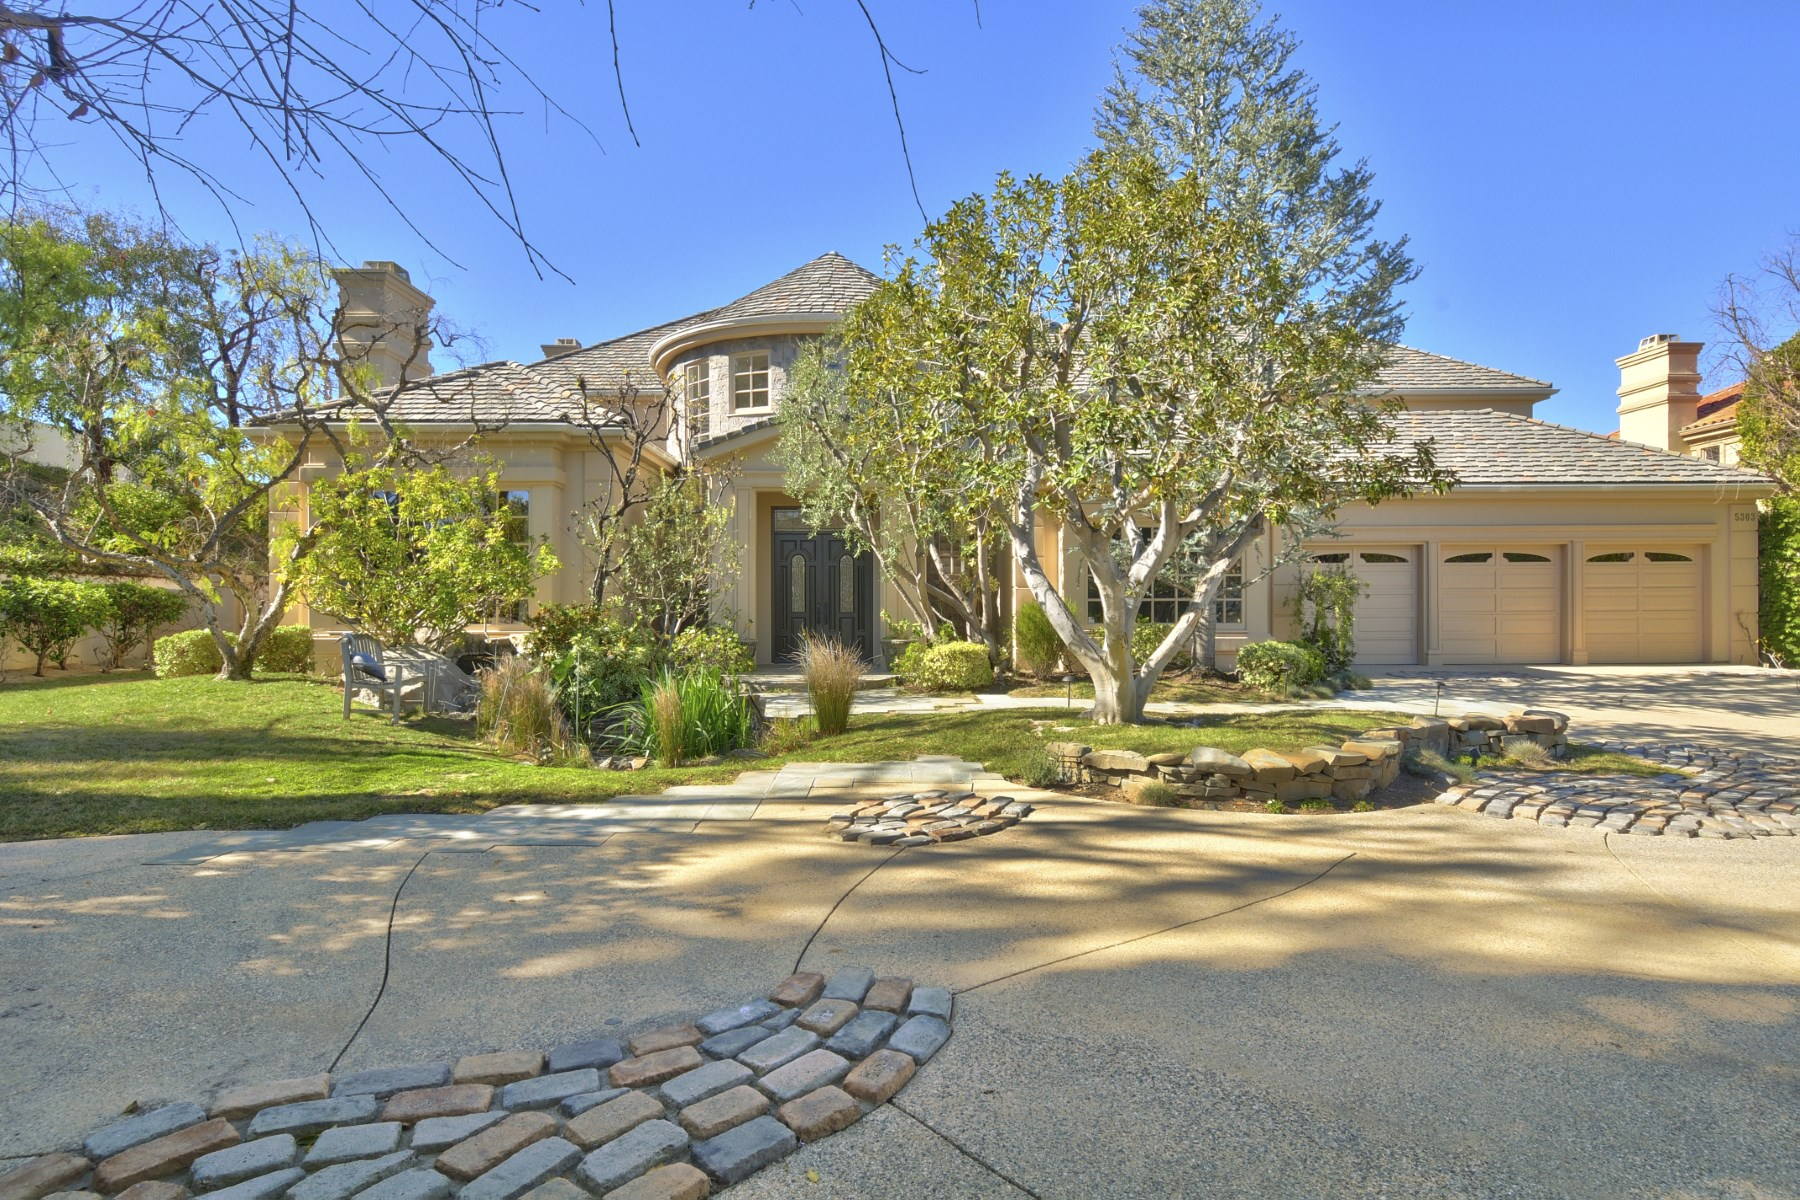 Single Family Home for Sale at Magical Mountain View Estates 5303 Enderby Court Calabasas, California 91302 United States